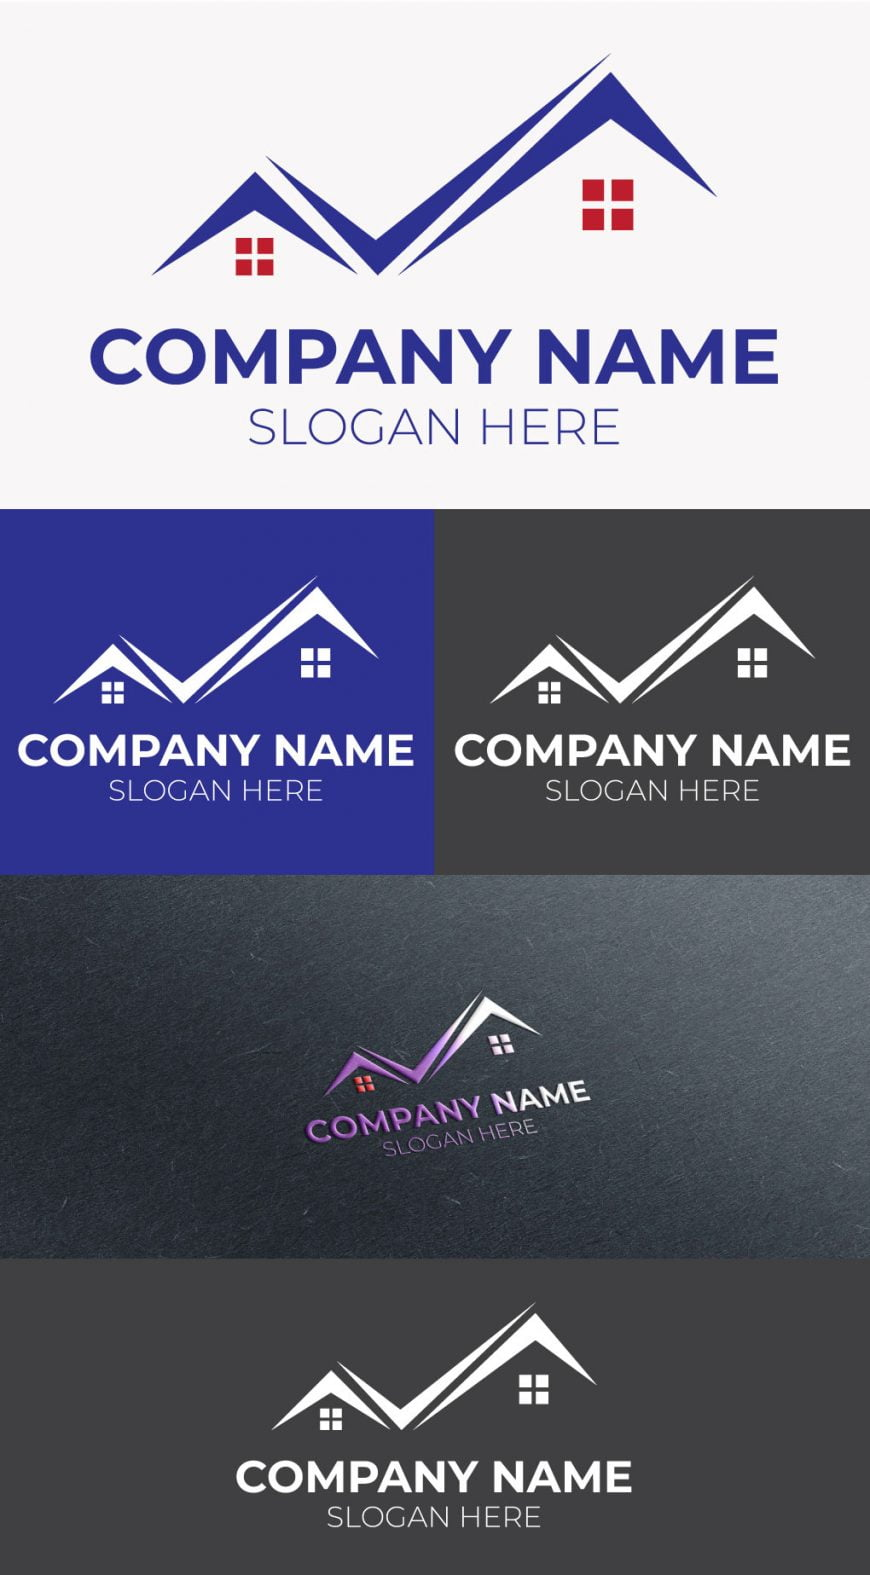 real-estate-logo-free-template-1